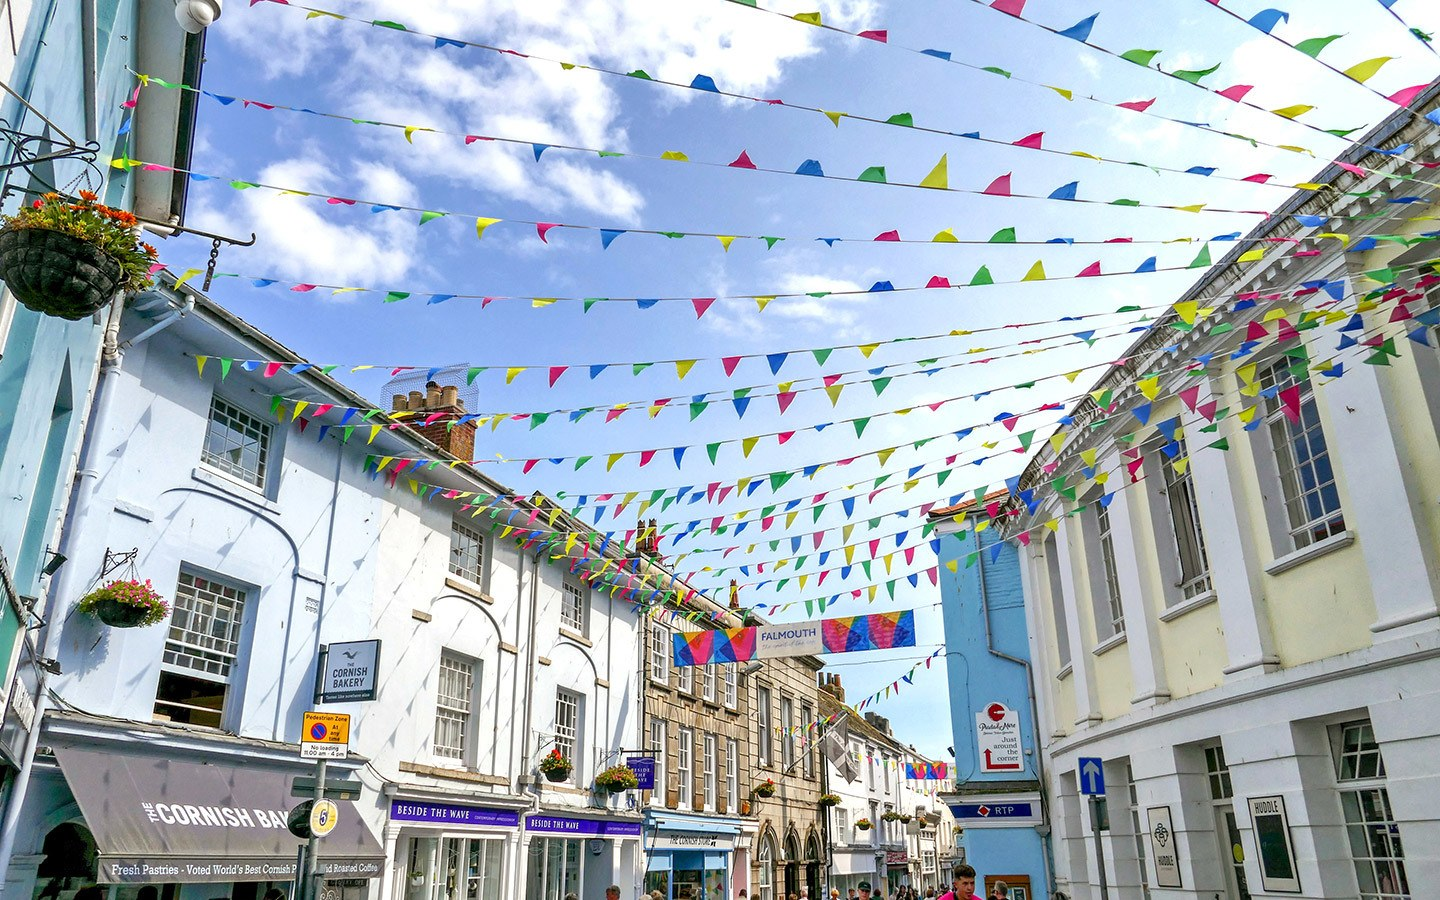 Bunting flags flying in Falmouth's town centre